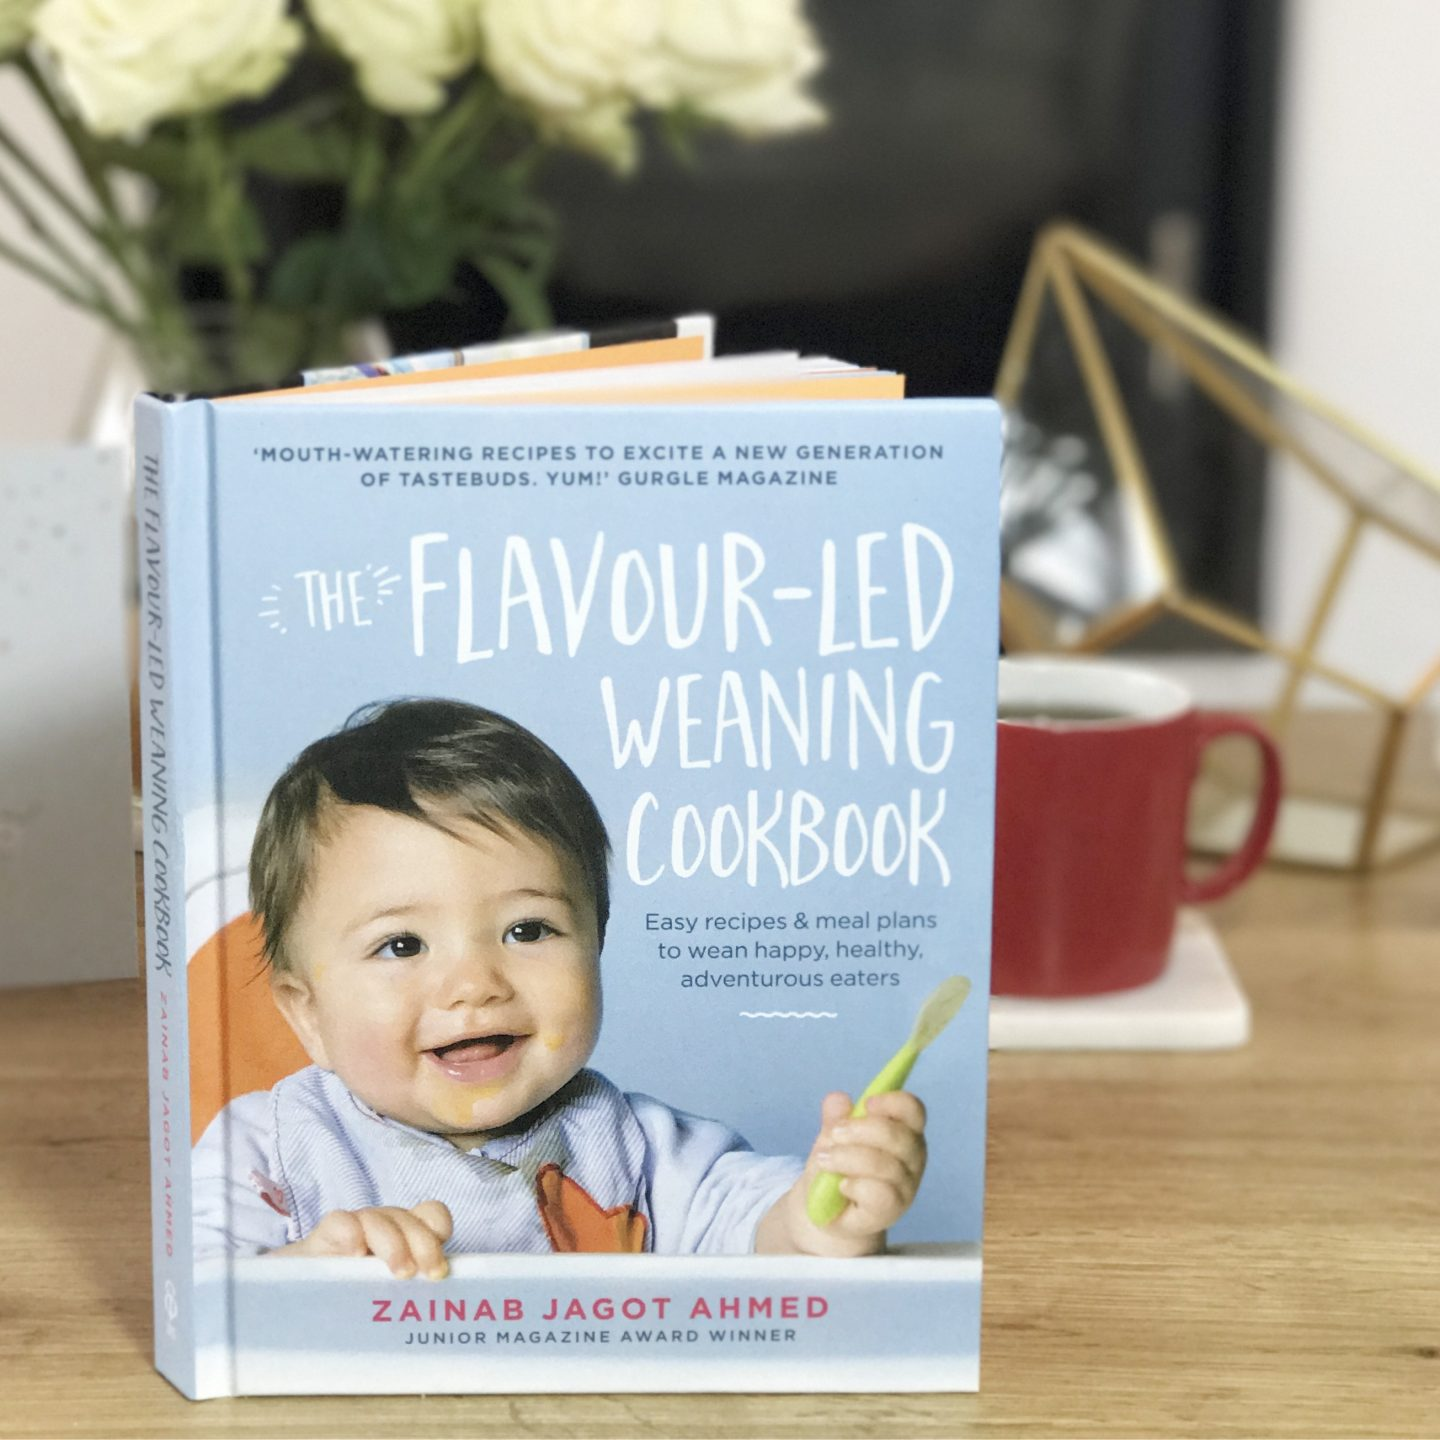 The Flavour Led Weaning Cookbook - A Review